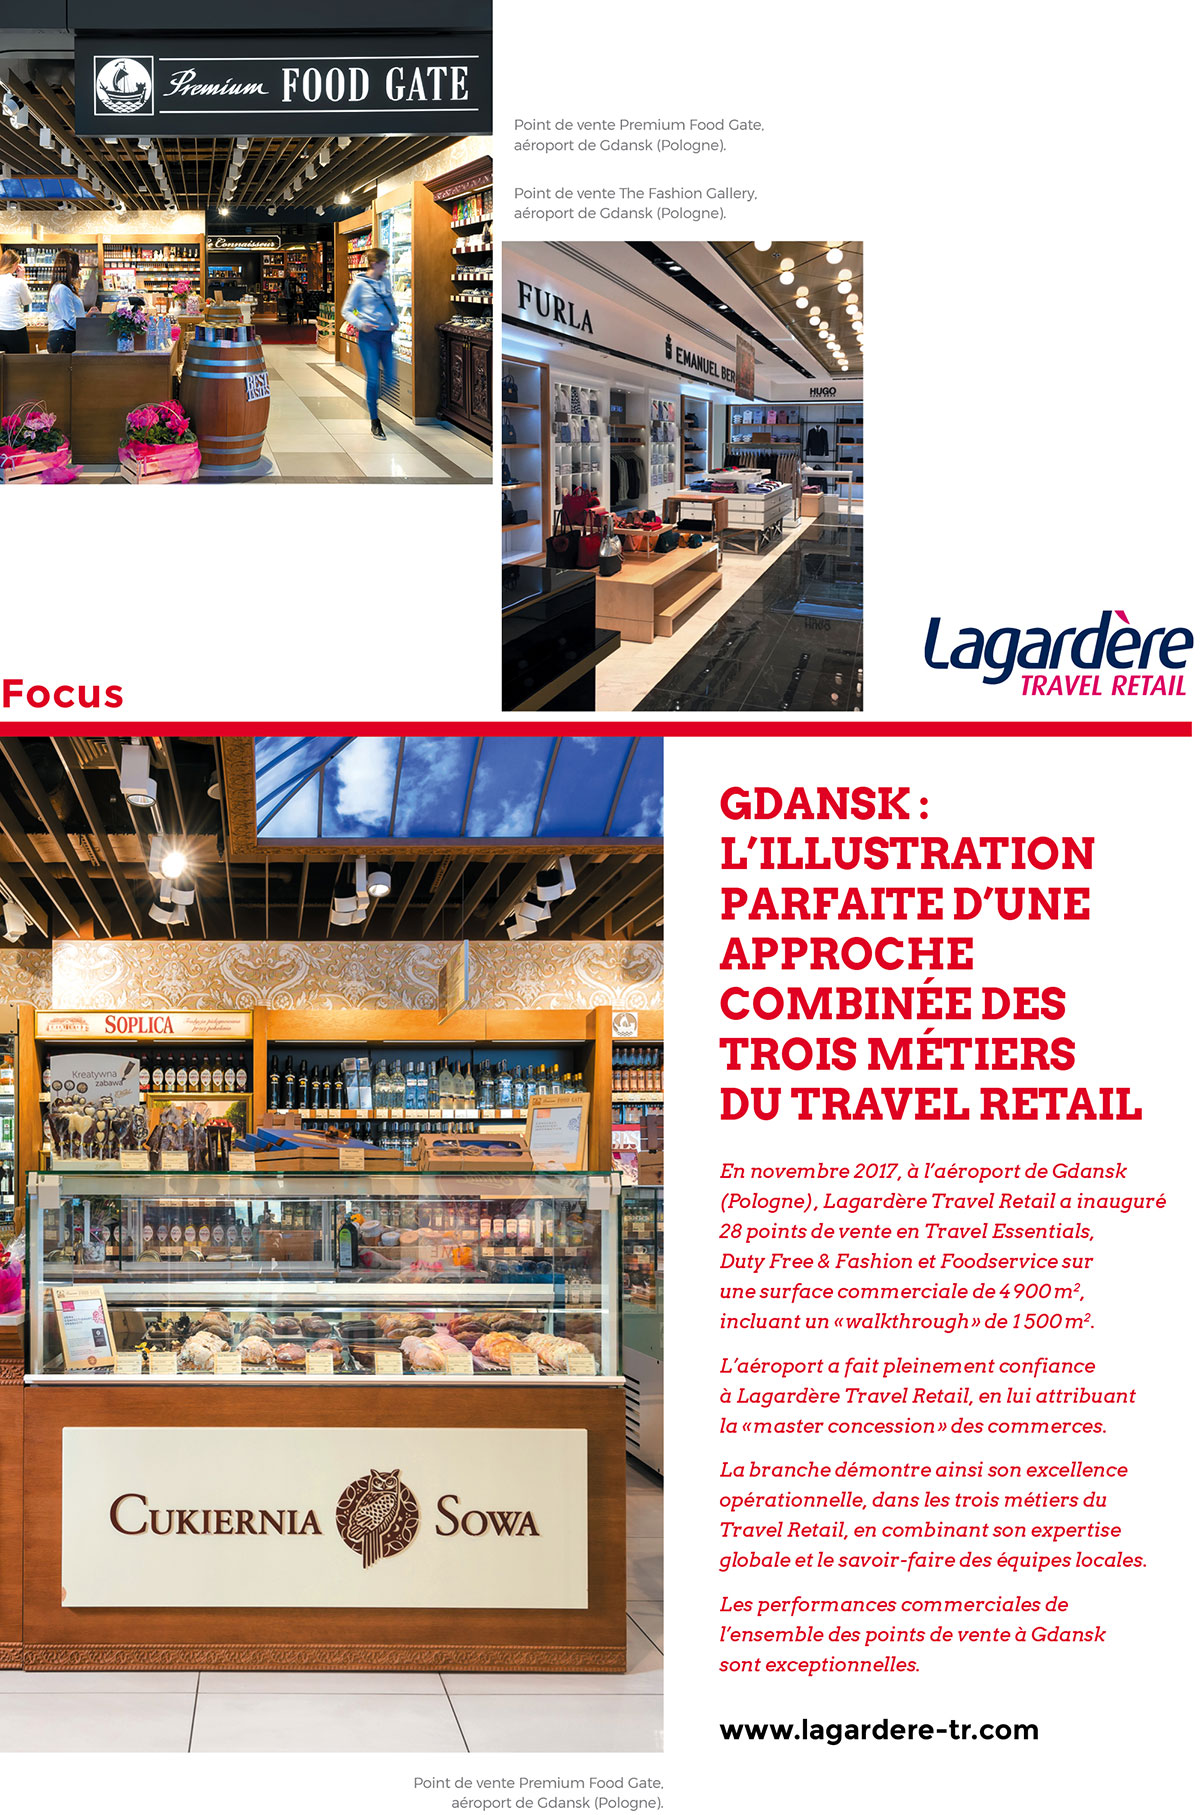 Focus Lagardère Travel Retail